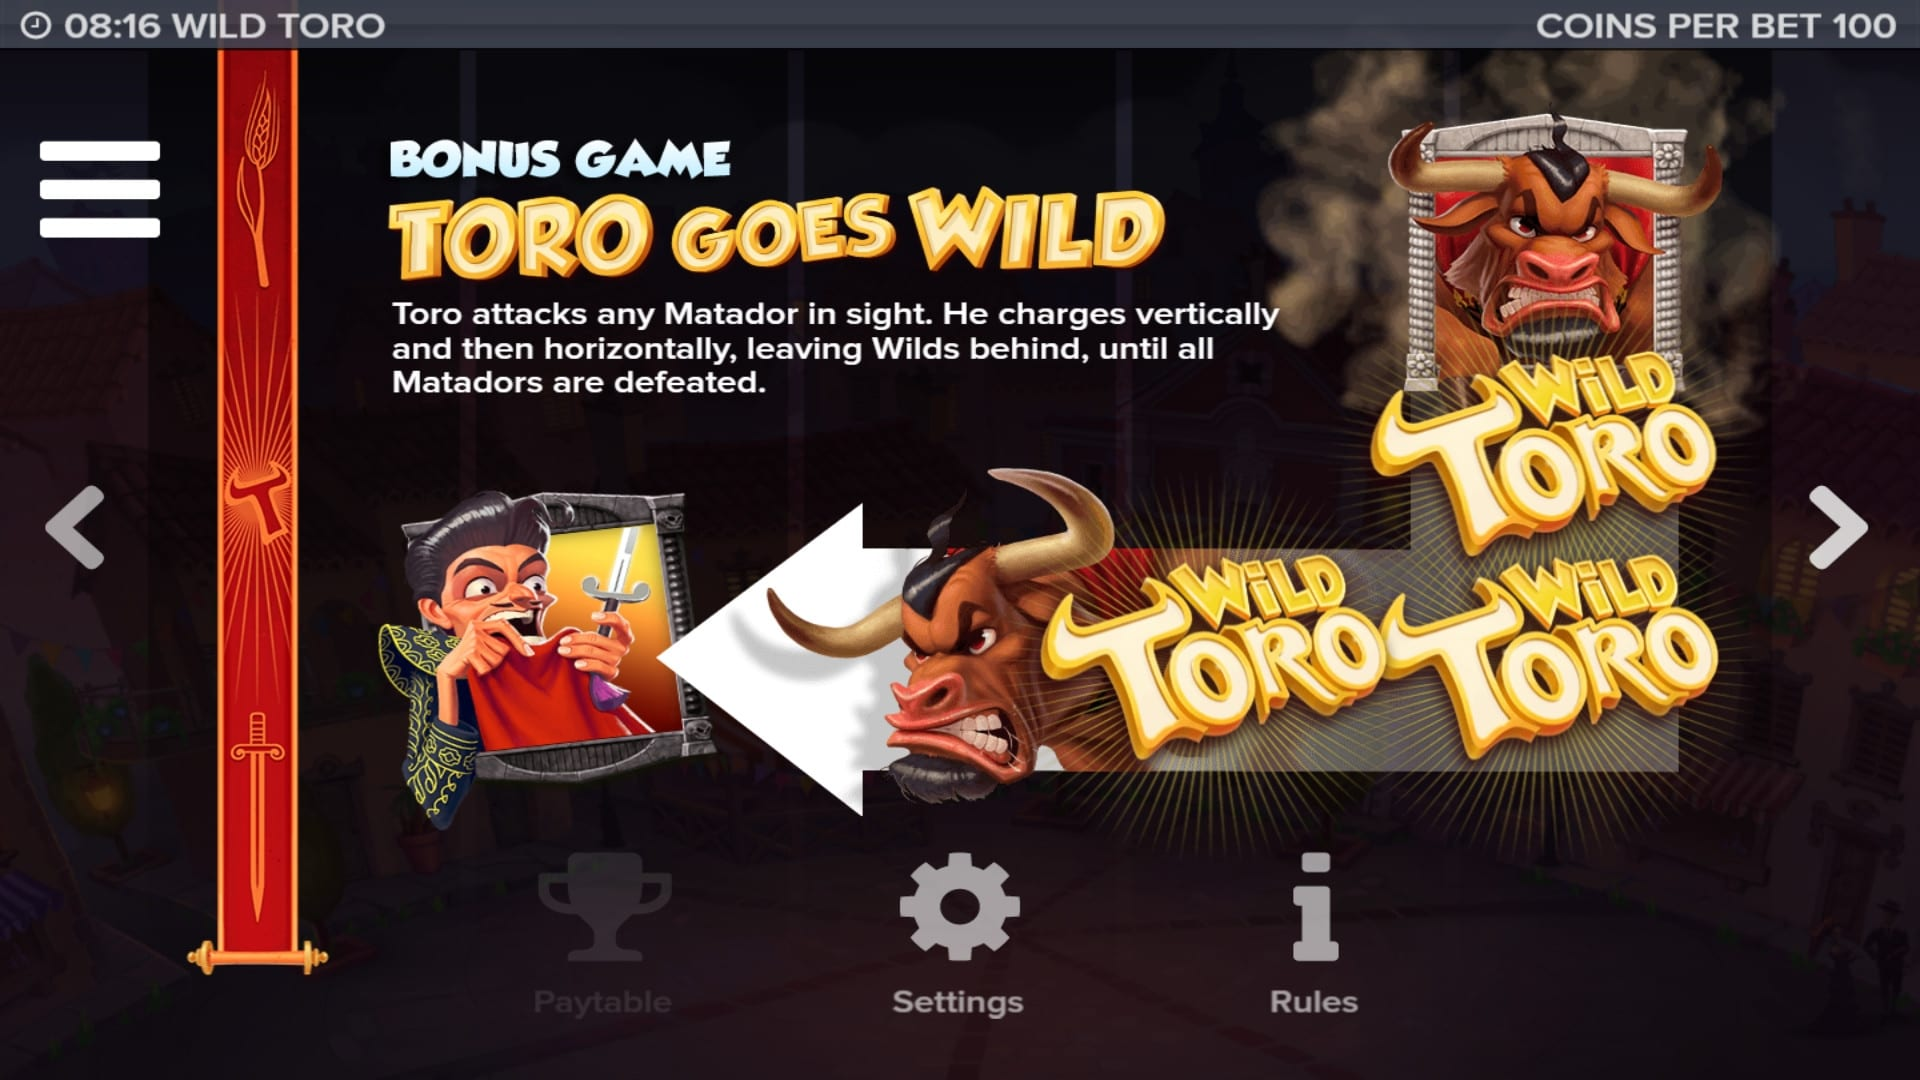 Wild Toro online slots game rules